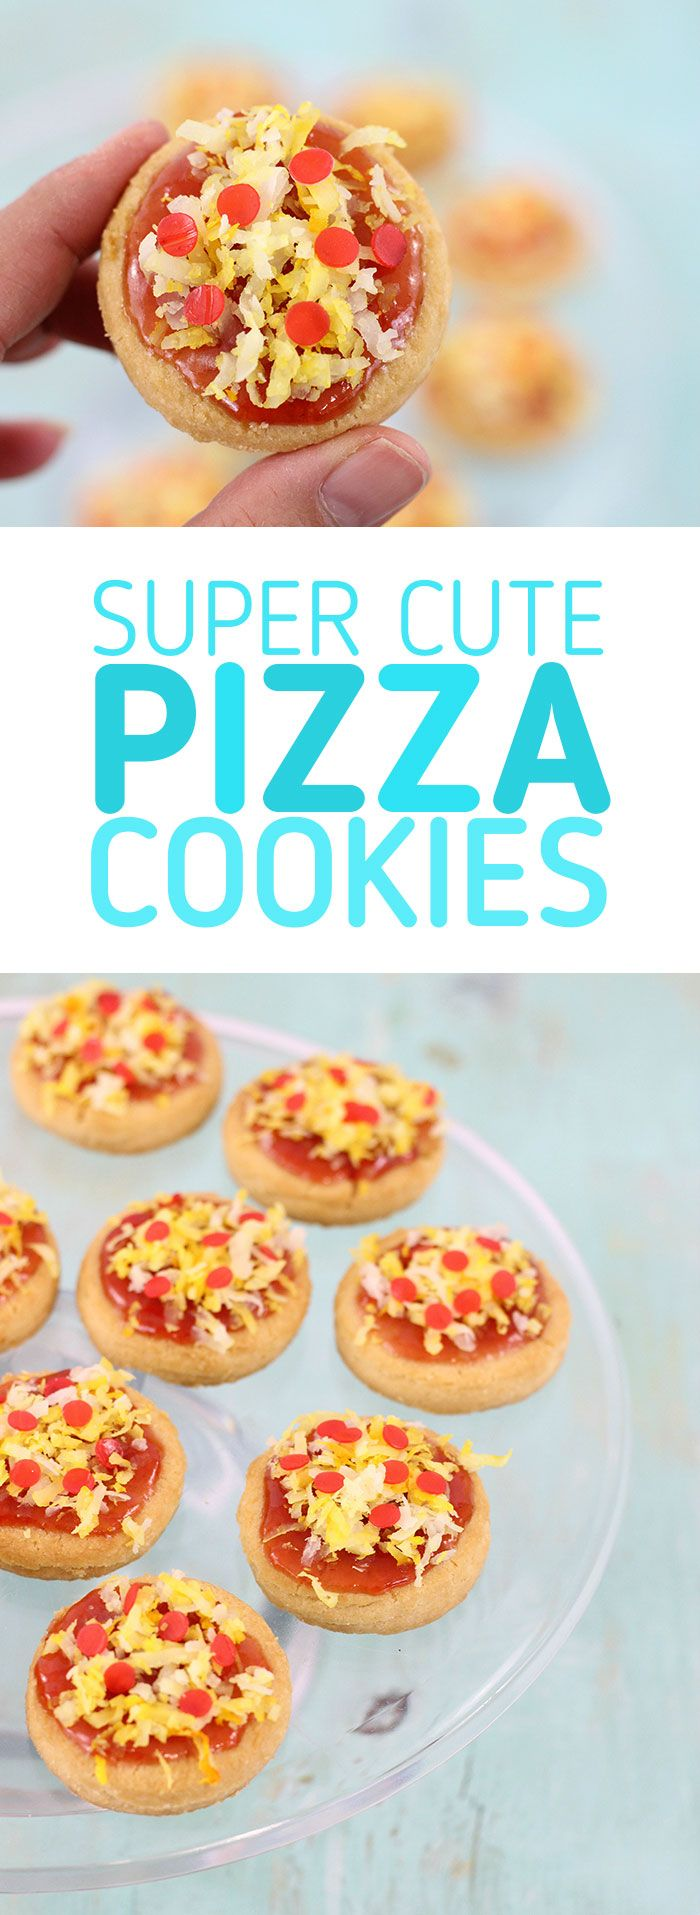 Pizza Cookies! This pizza cookie recipe is so easy using store bought cookies, jam, coconut. Not only are they adorable, but they are delicious too. Perfect for Teenage Mutant Ninja Turtle Themed Parties! via @dawnchats